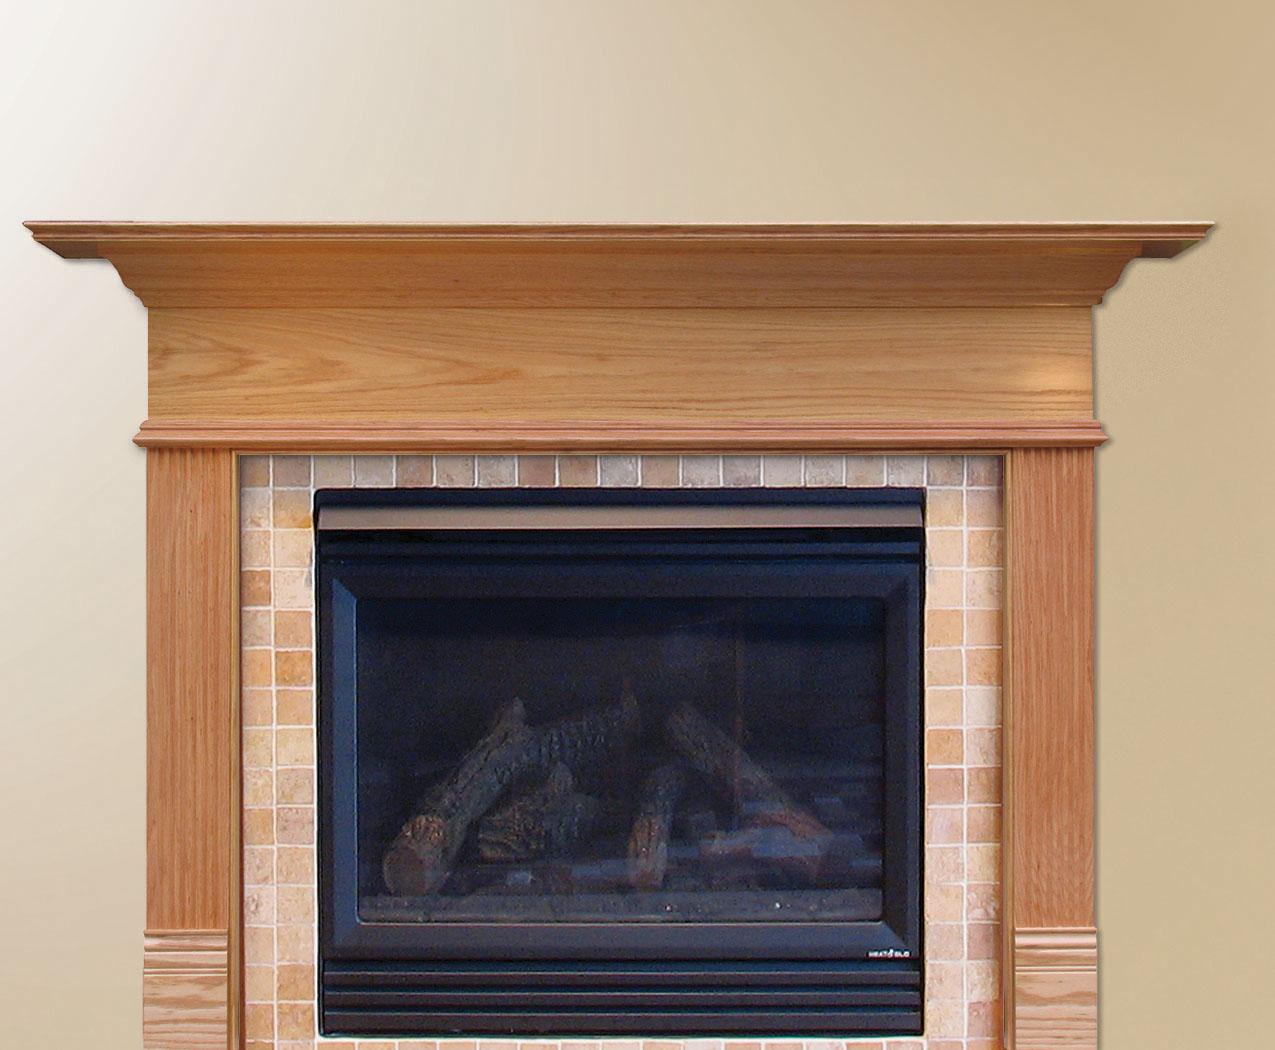 Wooden Fireplace Mantel Kit Easy Diy Woodworking